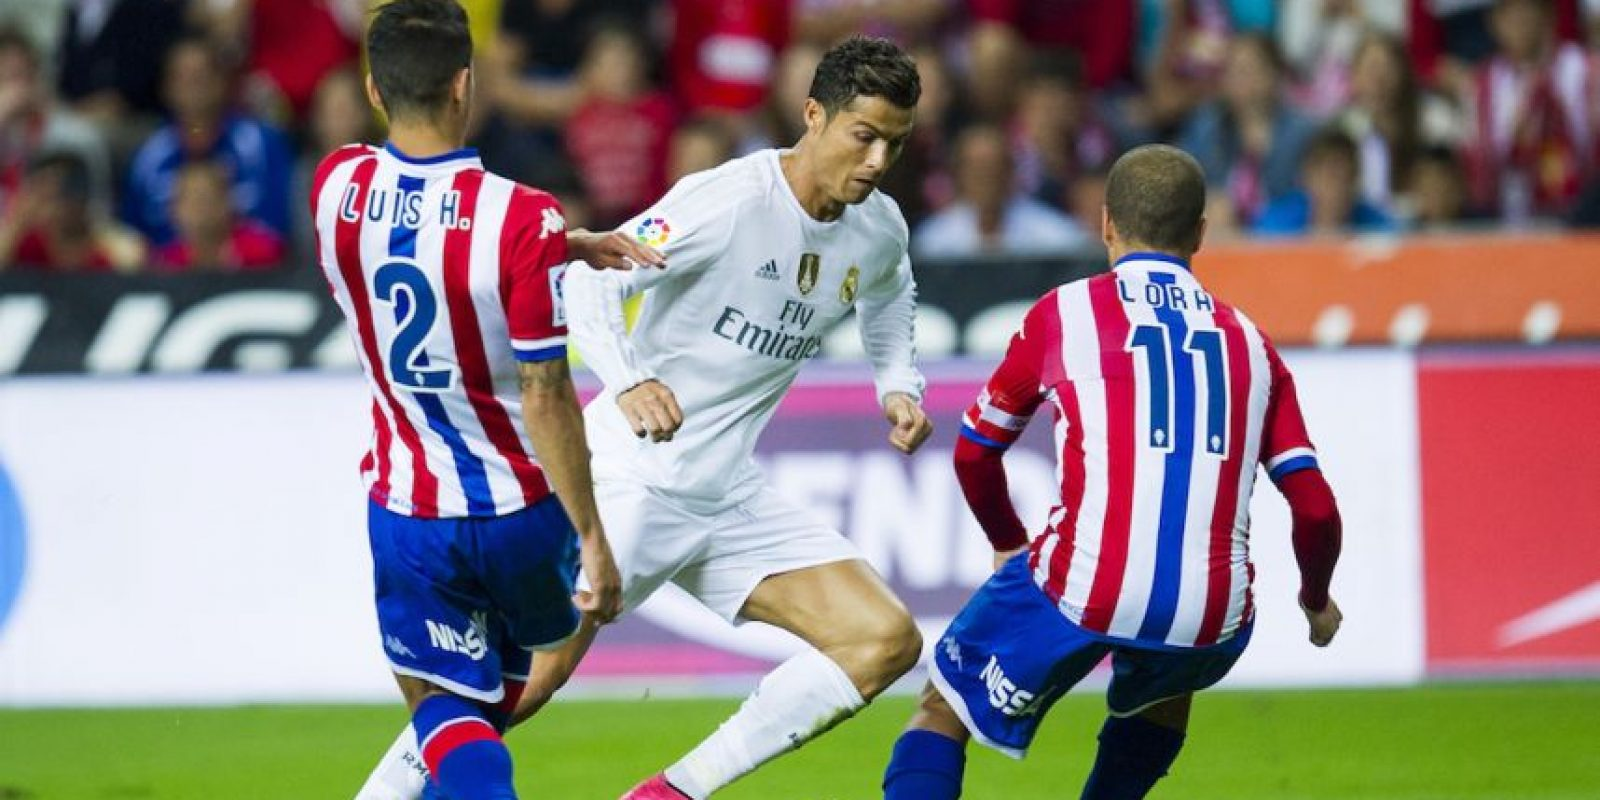 Sporting de Gijón 0-0 Real Madrid Foto: Getty Images